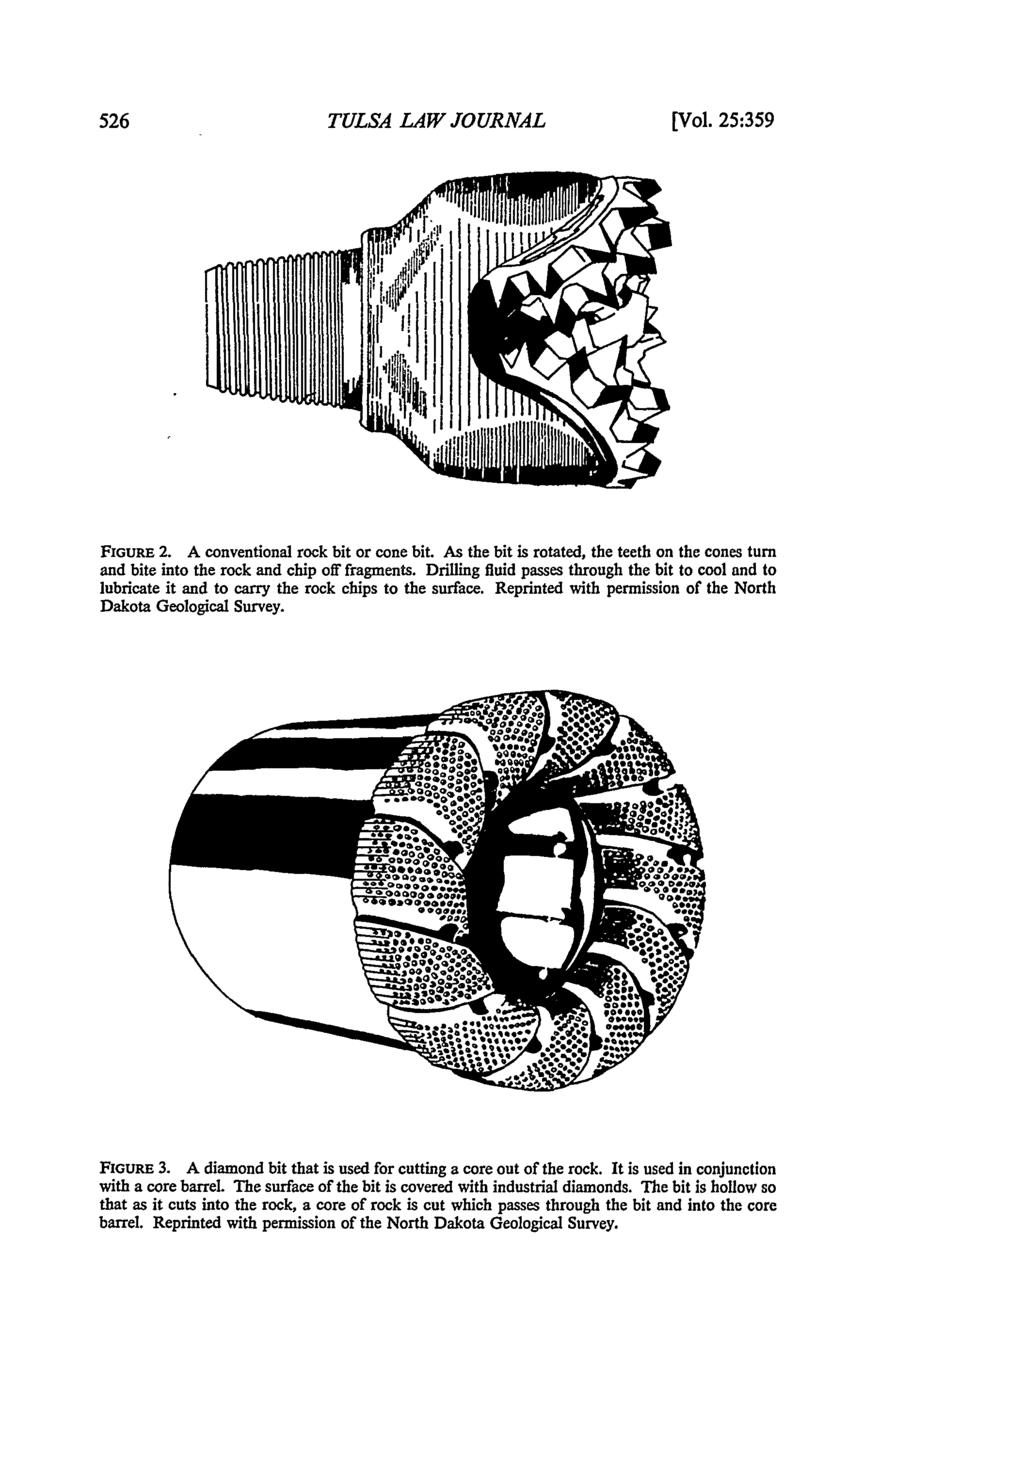 The Anatomy of an Oil and Gas Drilling Contract - PDF